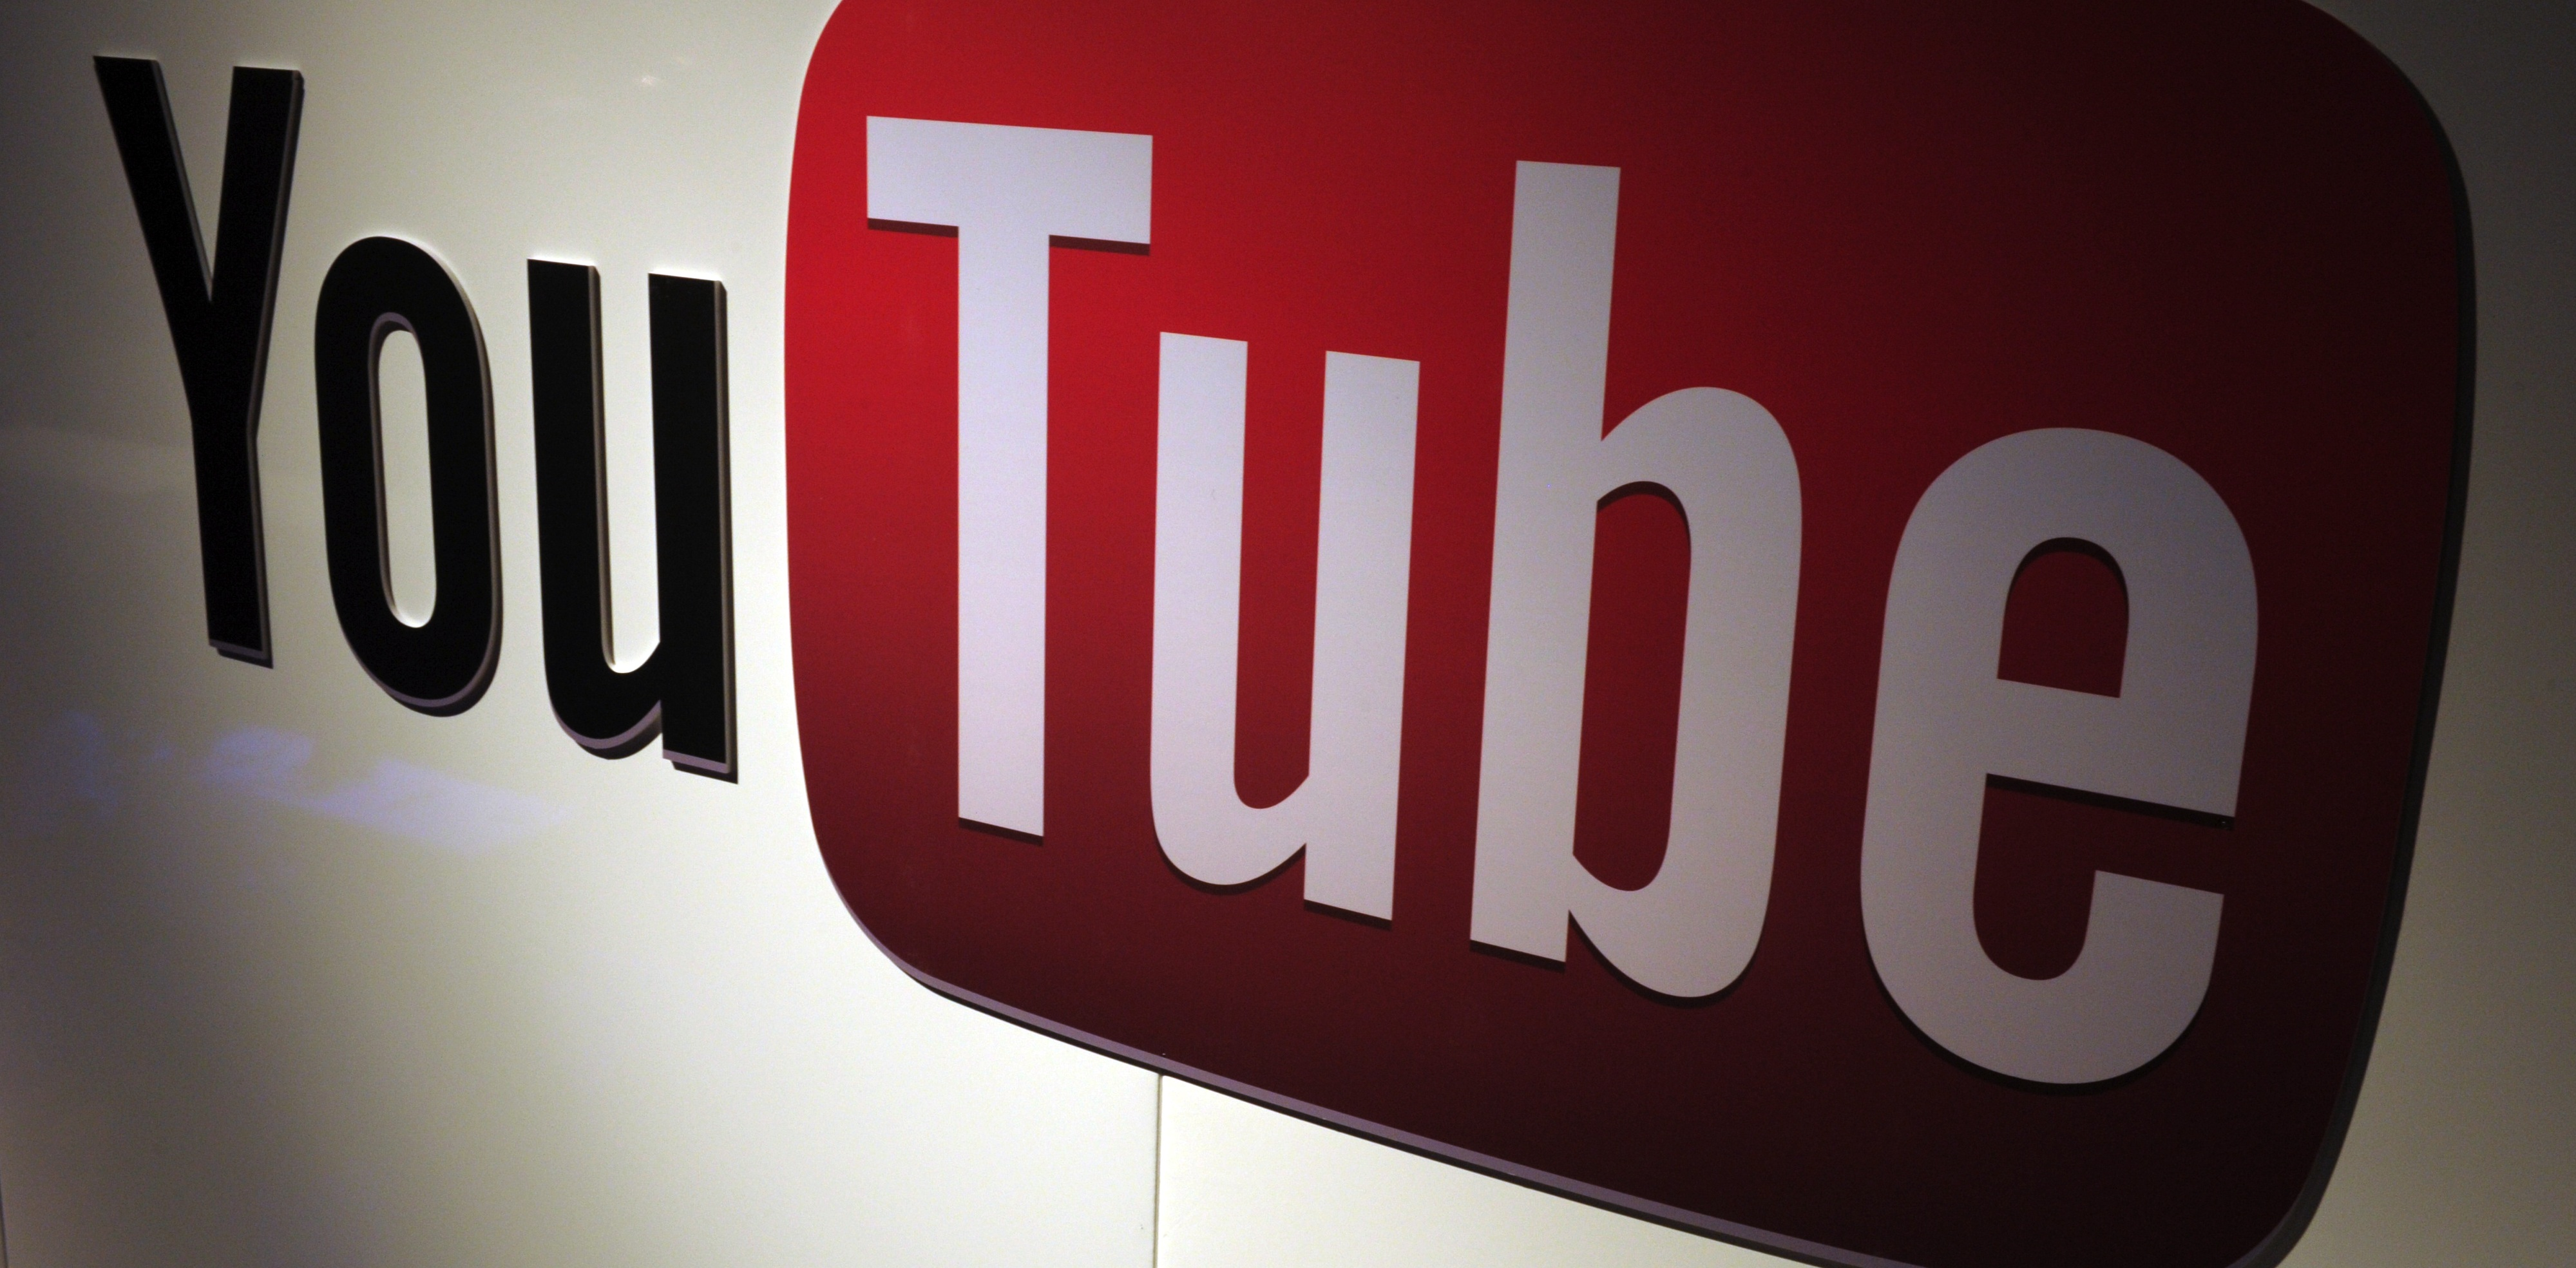 YouTube's Jawed Karim Slams the New Google+ Commenting System